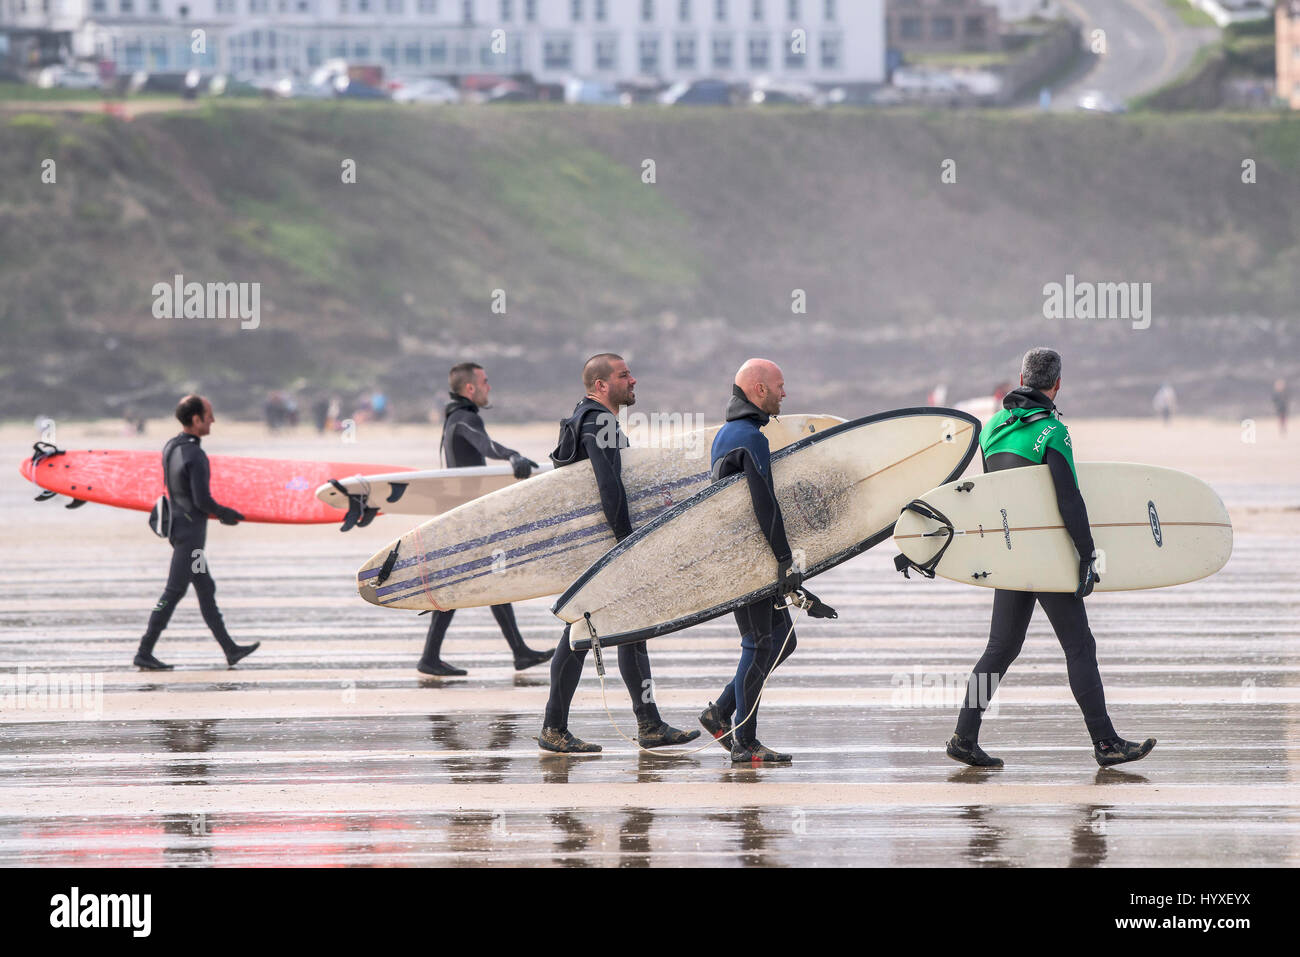 Surfers carrying surfboards Surfing UK Cornwall Walking Watersport Leisure activity Lifestyle Recreation Friends - Stock Image